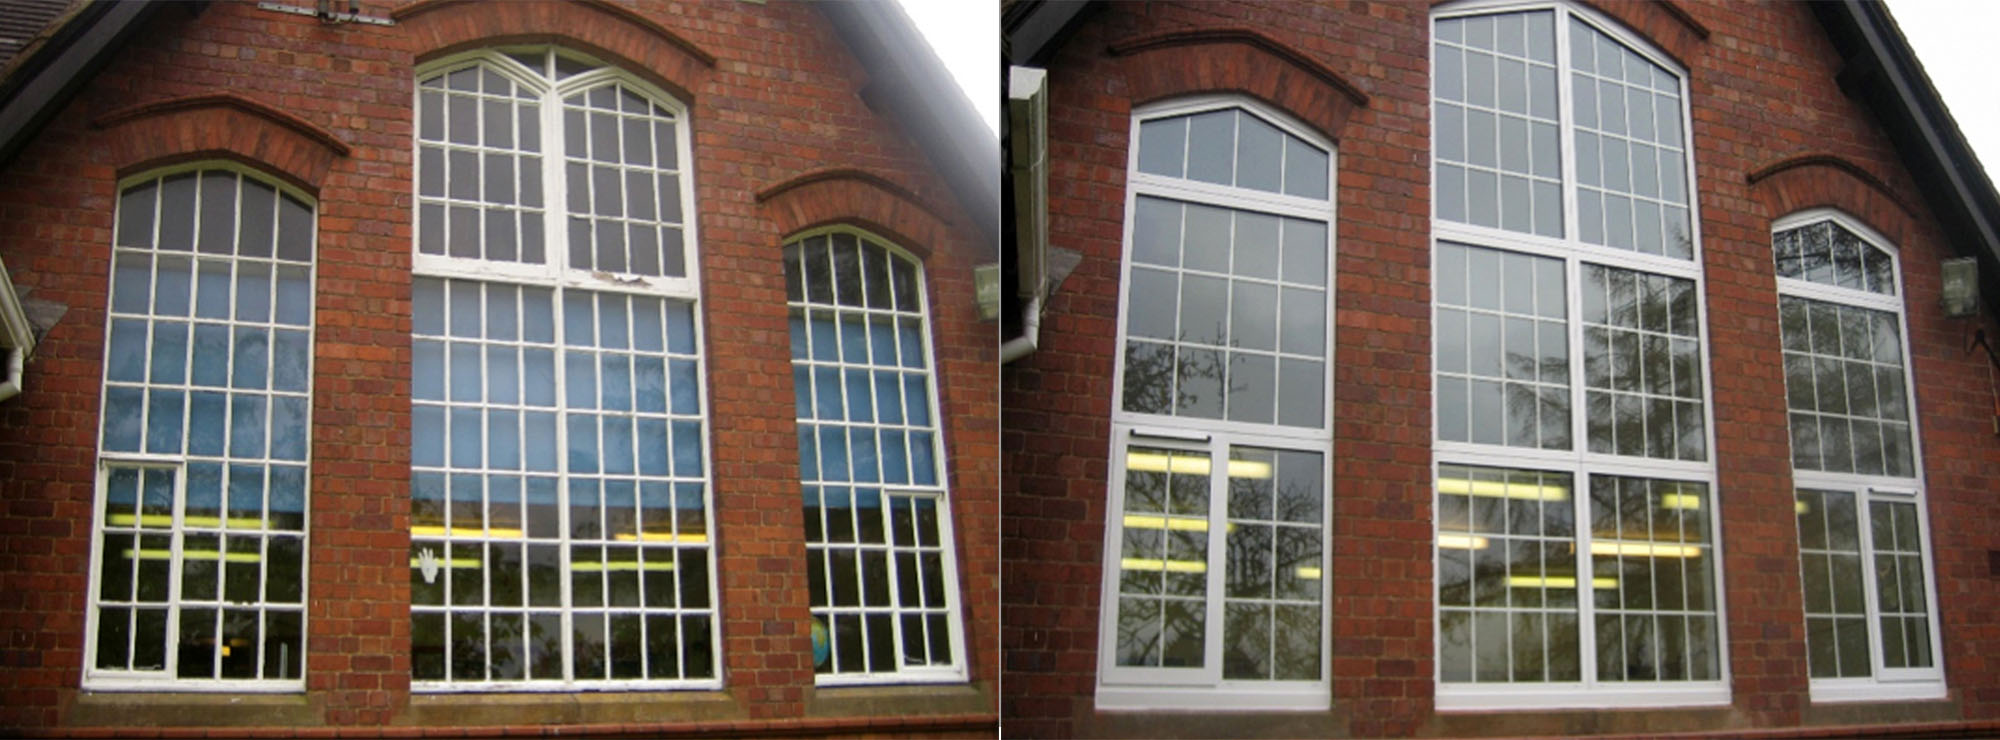 <strong>Church of England Primary School in Worcestershire.</strong>Replacement steel windows and timber doors with white commercial aluminium.